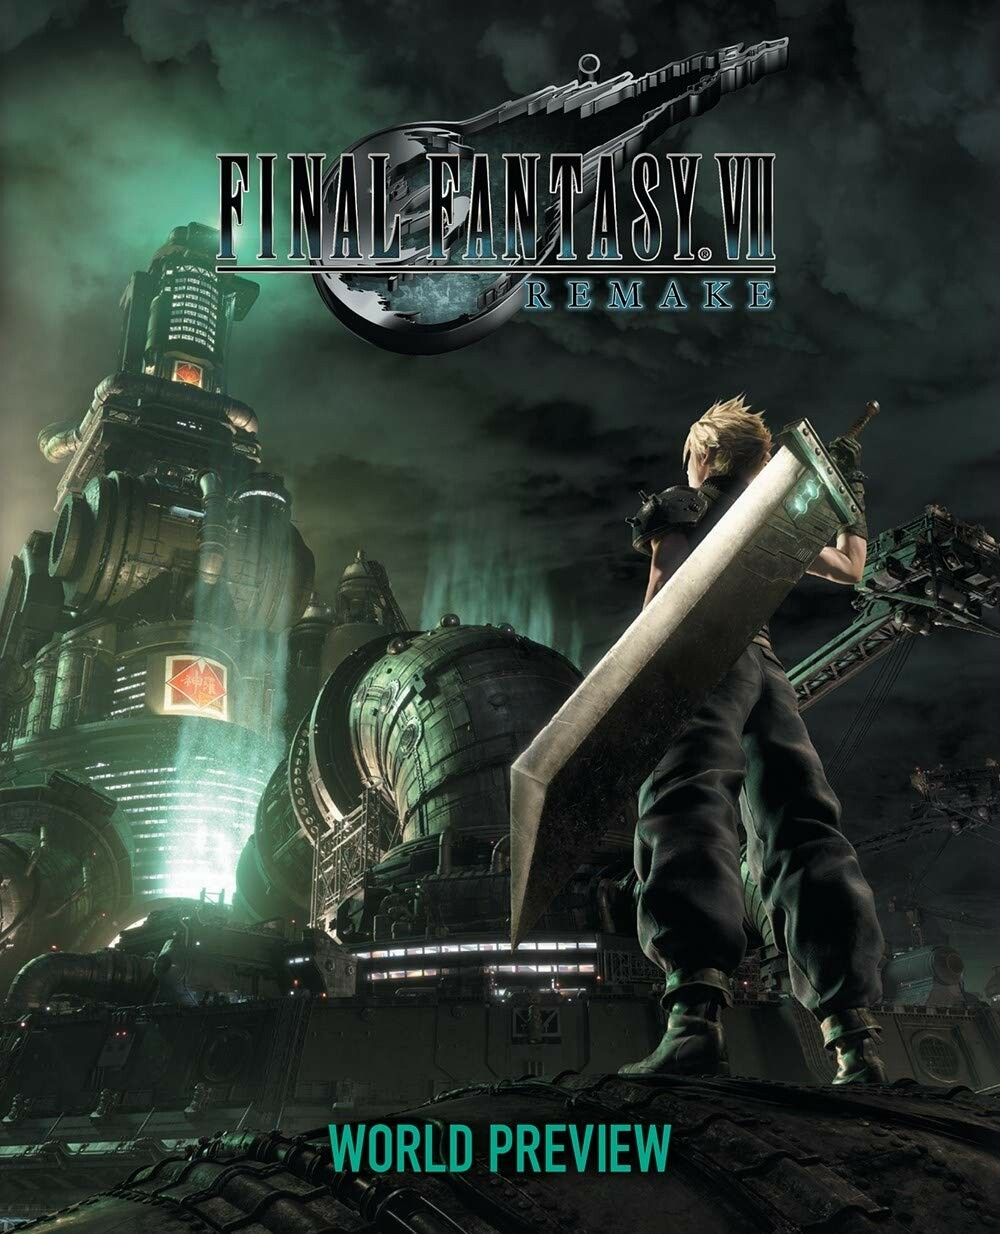 Final Fantasy VII Remake: World Preview - English Localization